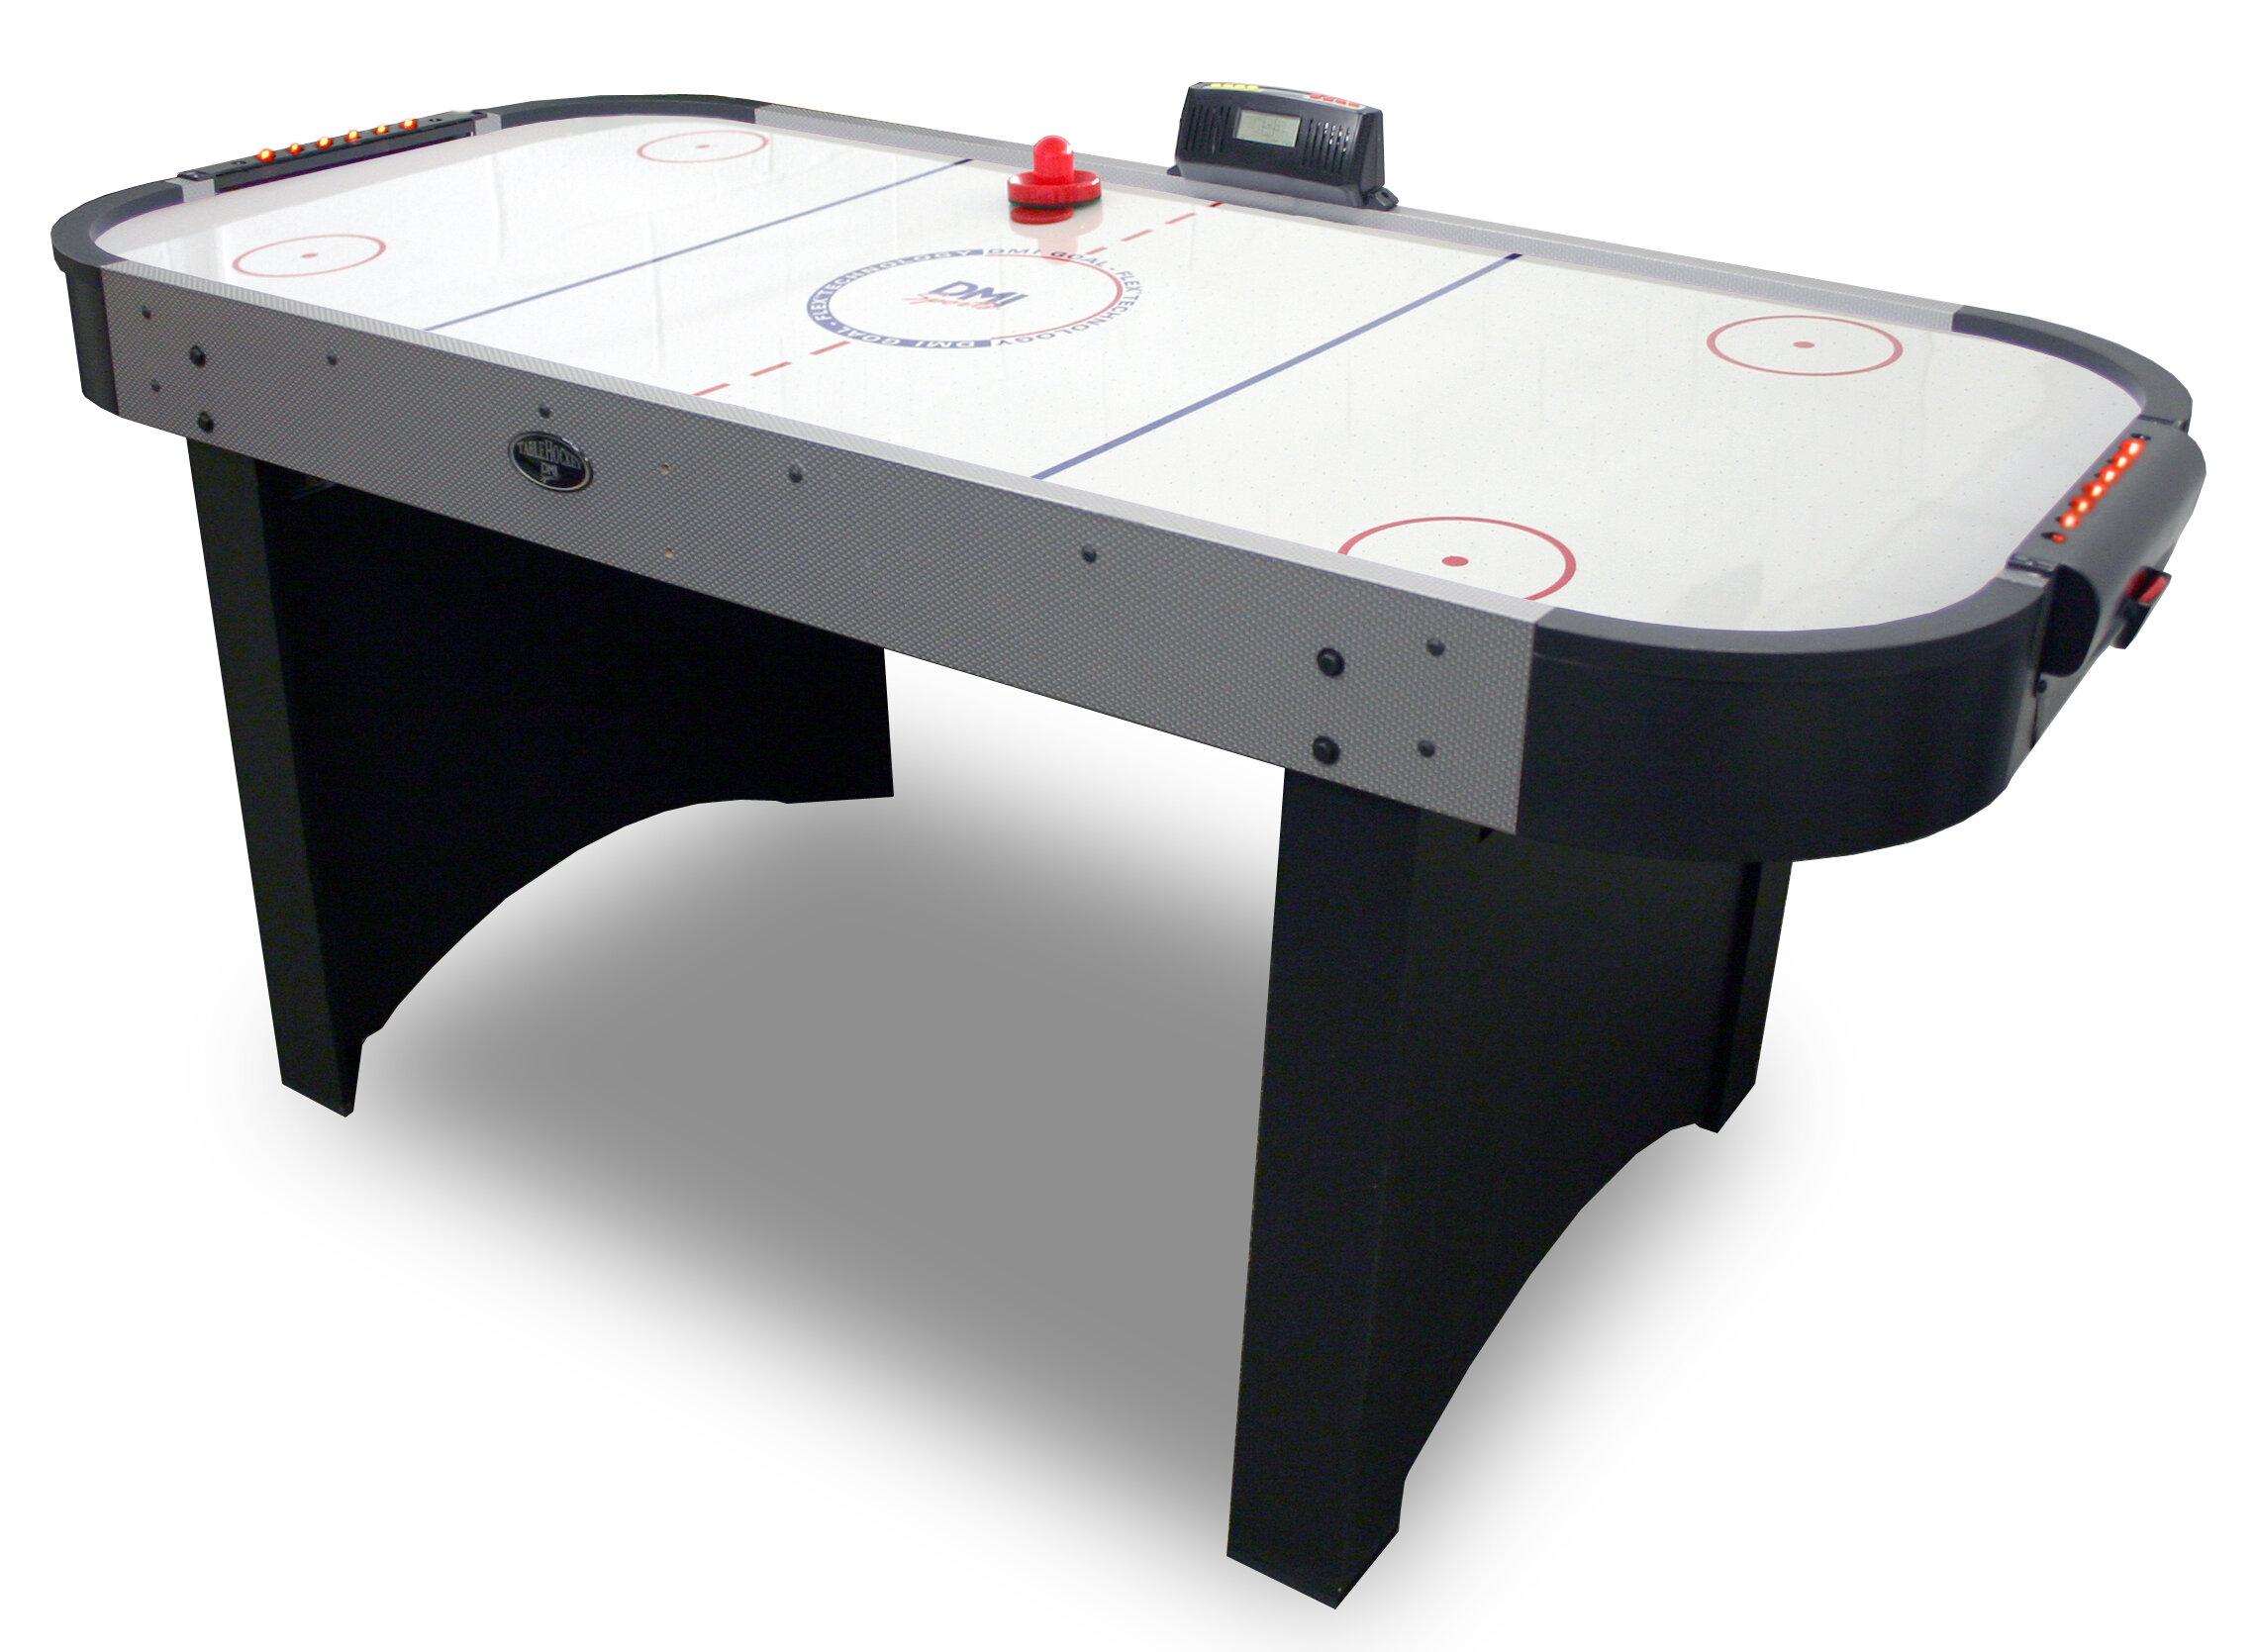 Verus Sports 6u0027 Air Hockey Table With Goal Flex 180 | Wayfair